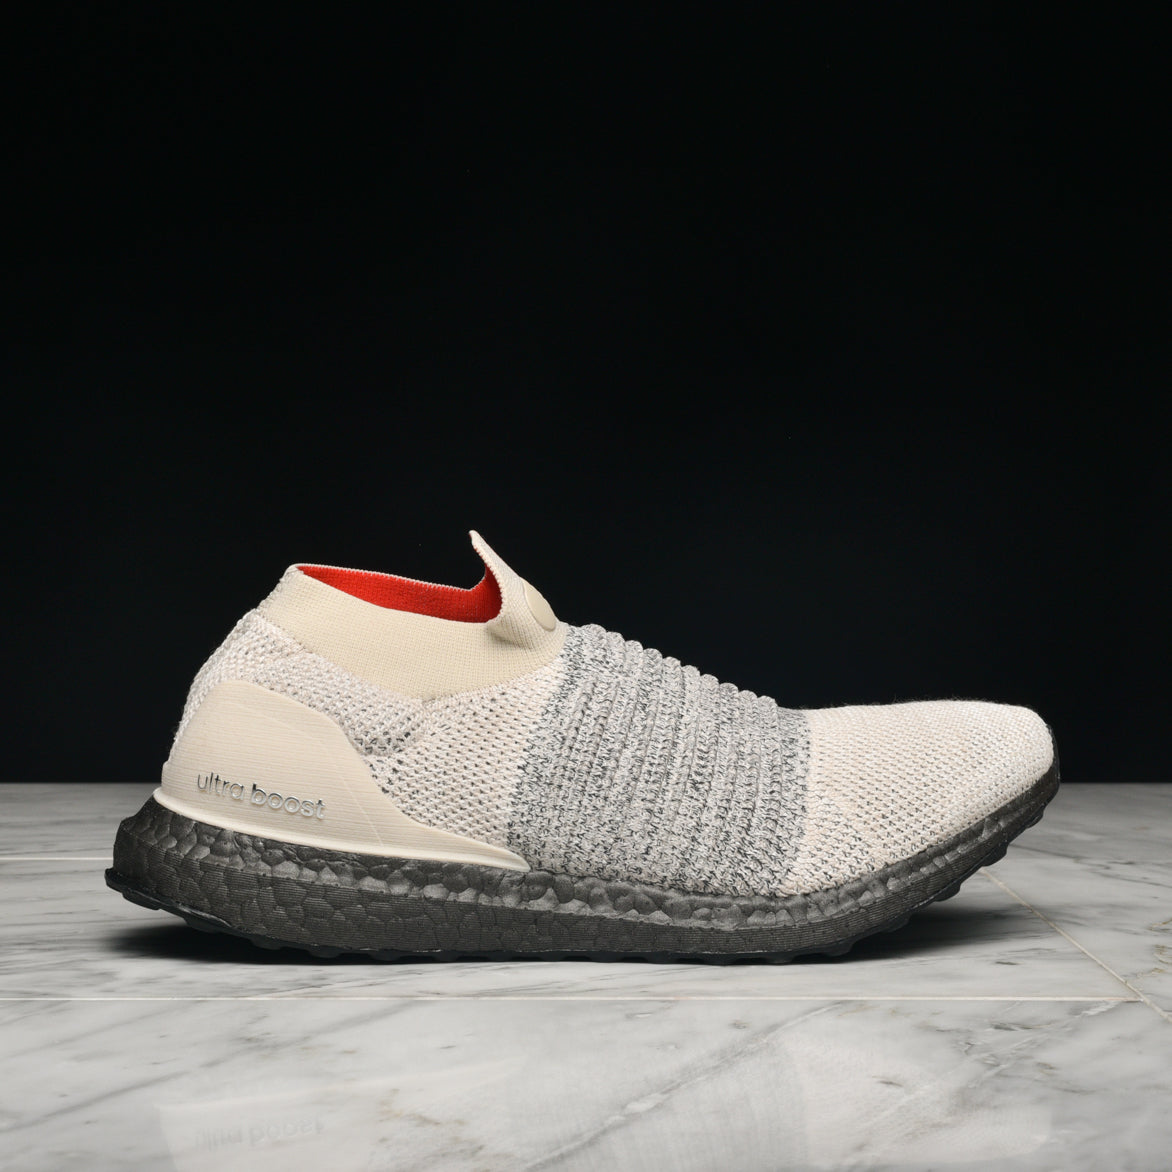 ULTRABOOST LACELESS - CLEAR BROWN   WHITE   CARBON ... 4d4031dad